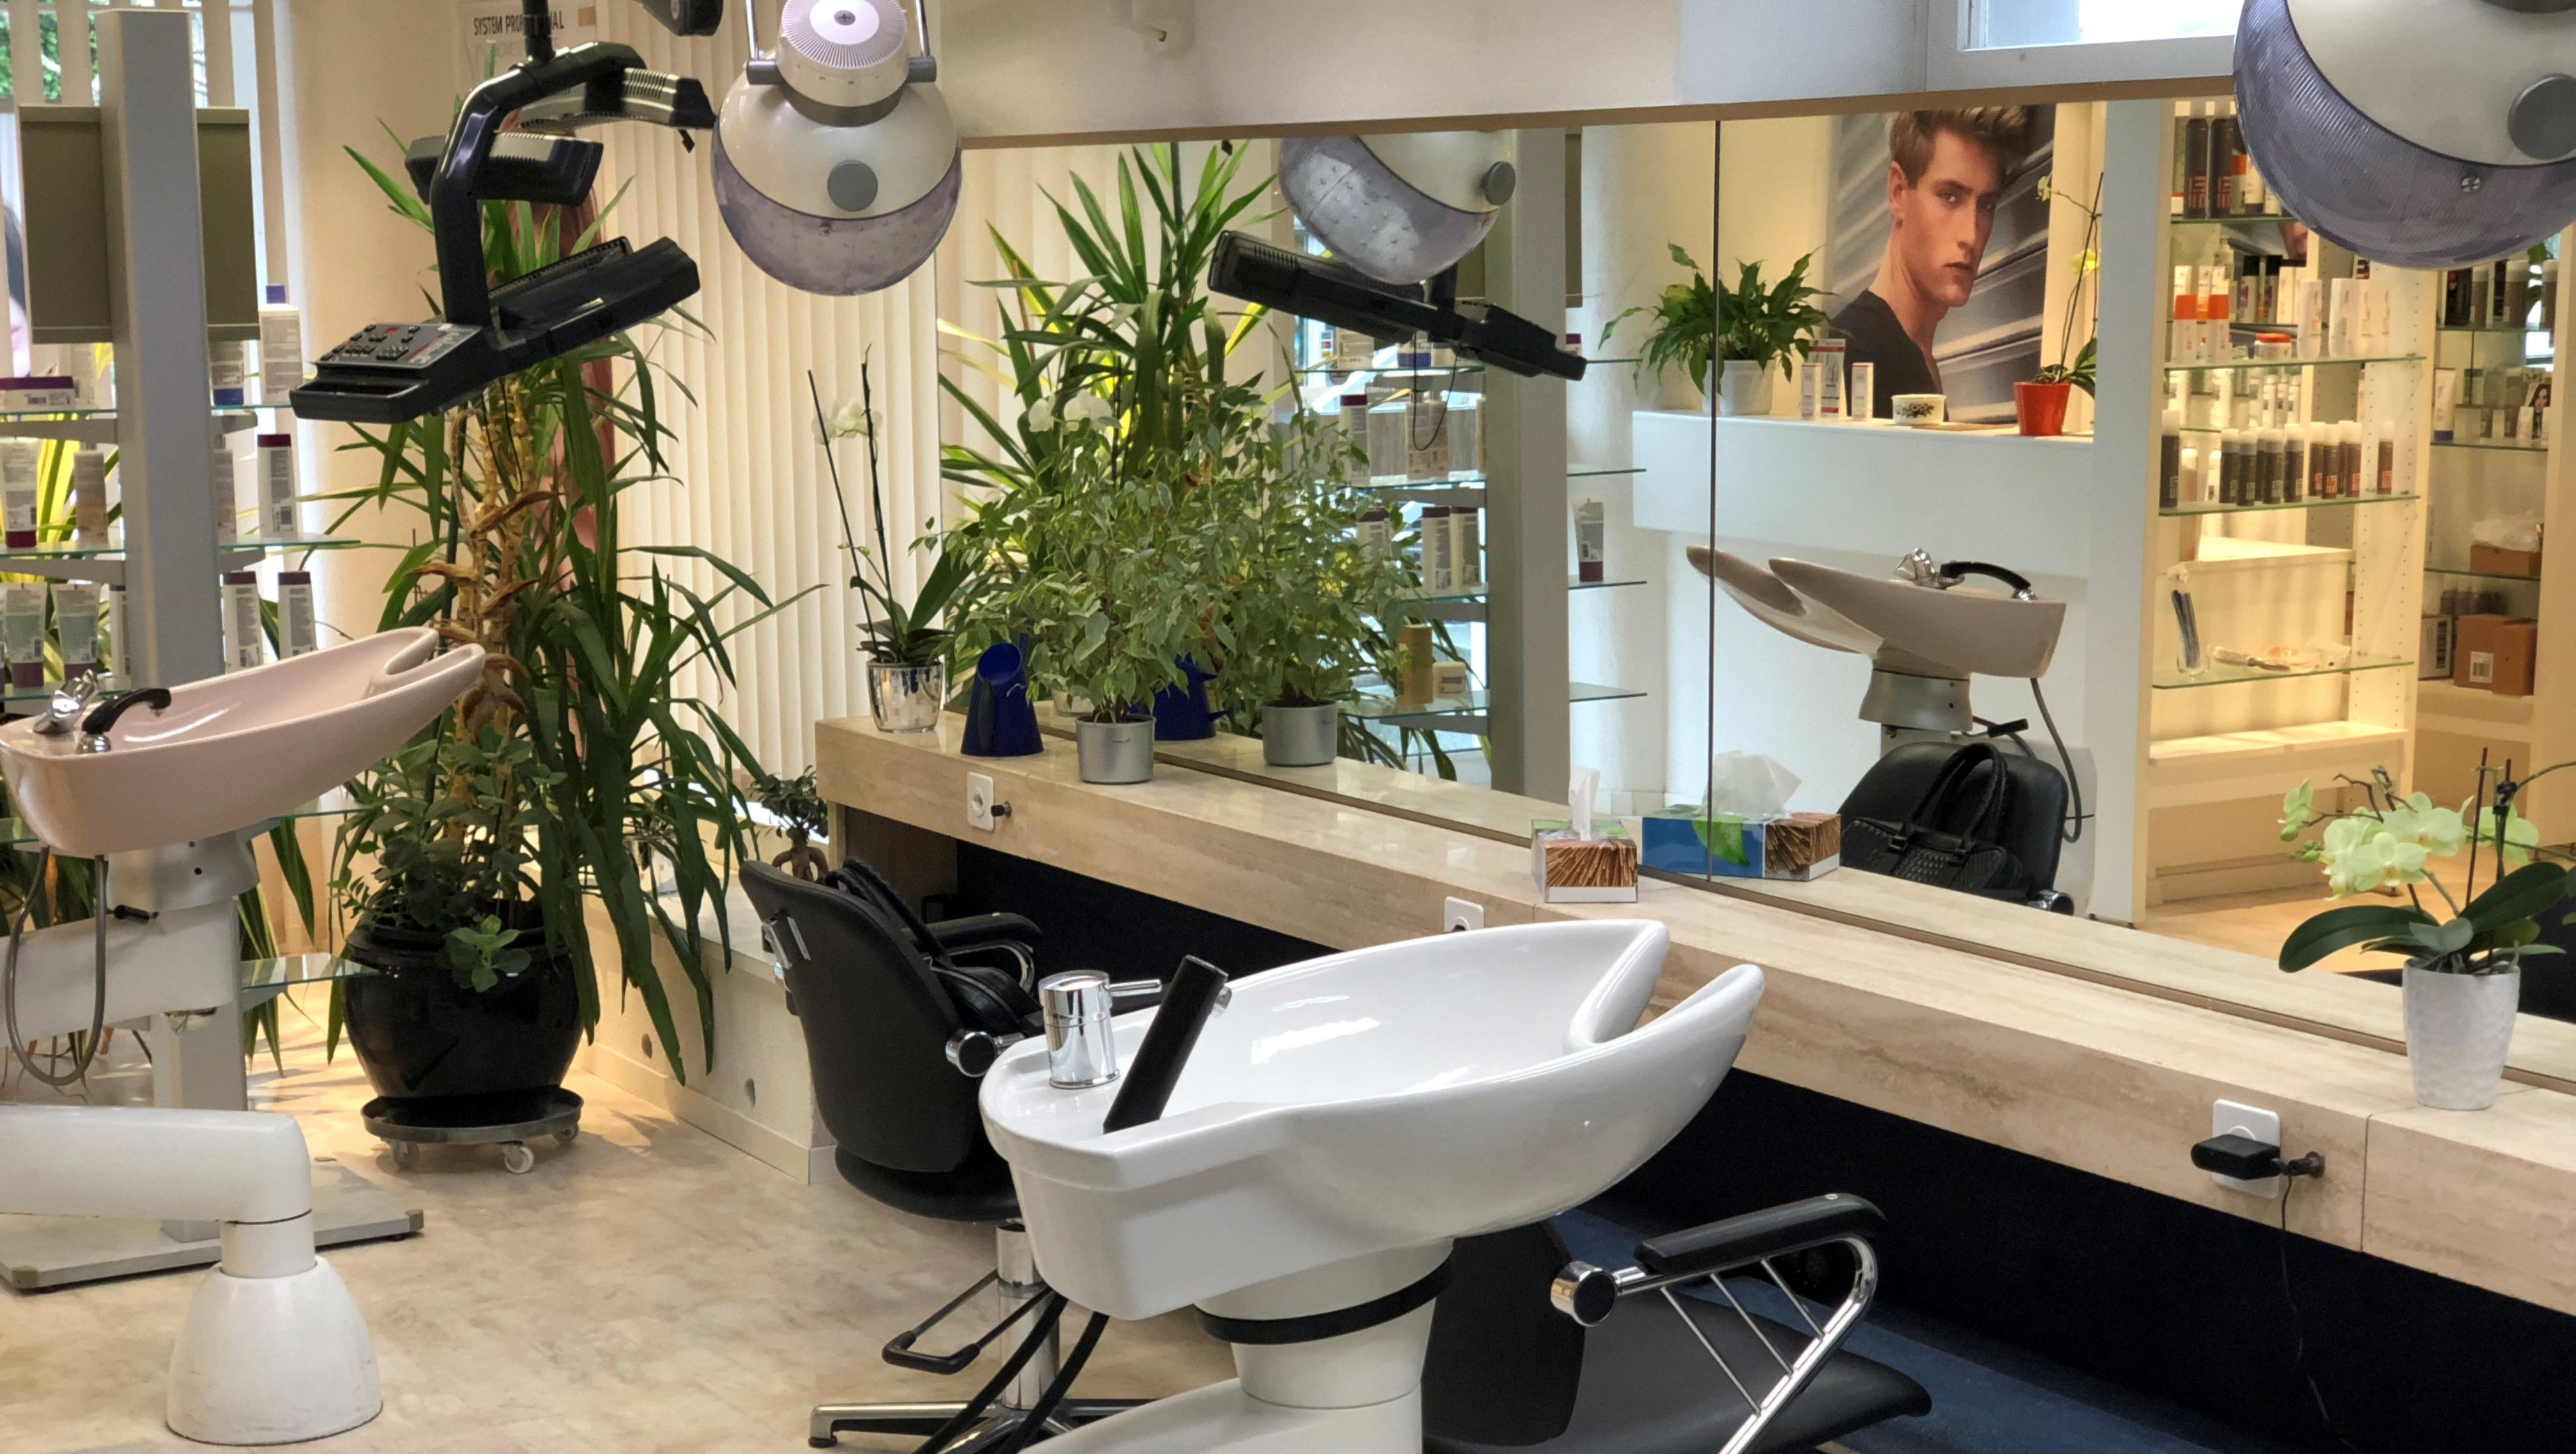 Coiffeur Salon - Wash and Style